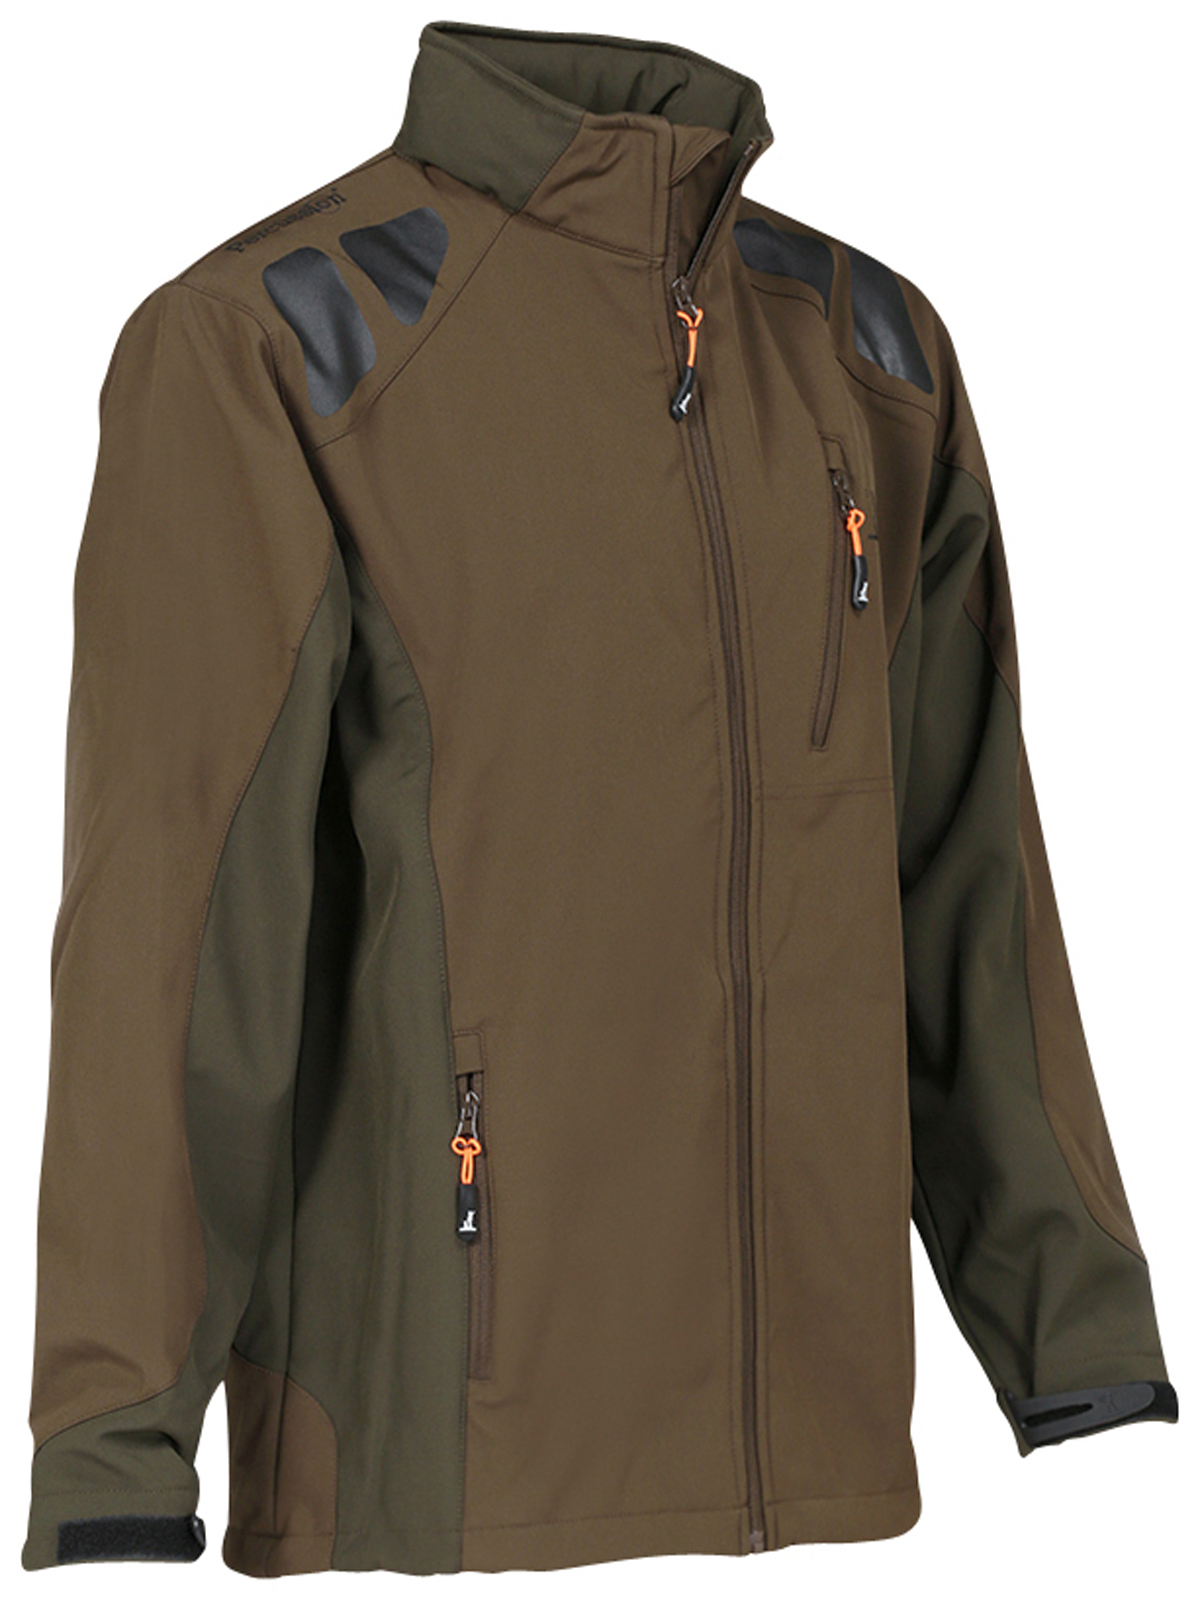 Percussion Softshell Hunting Jacket